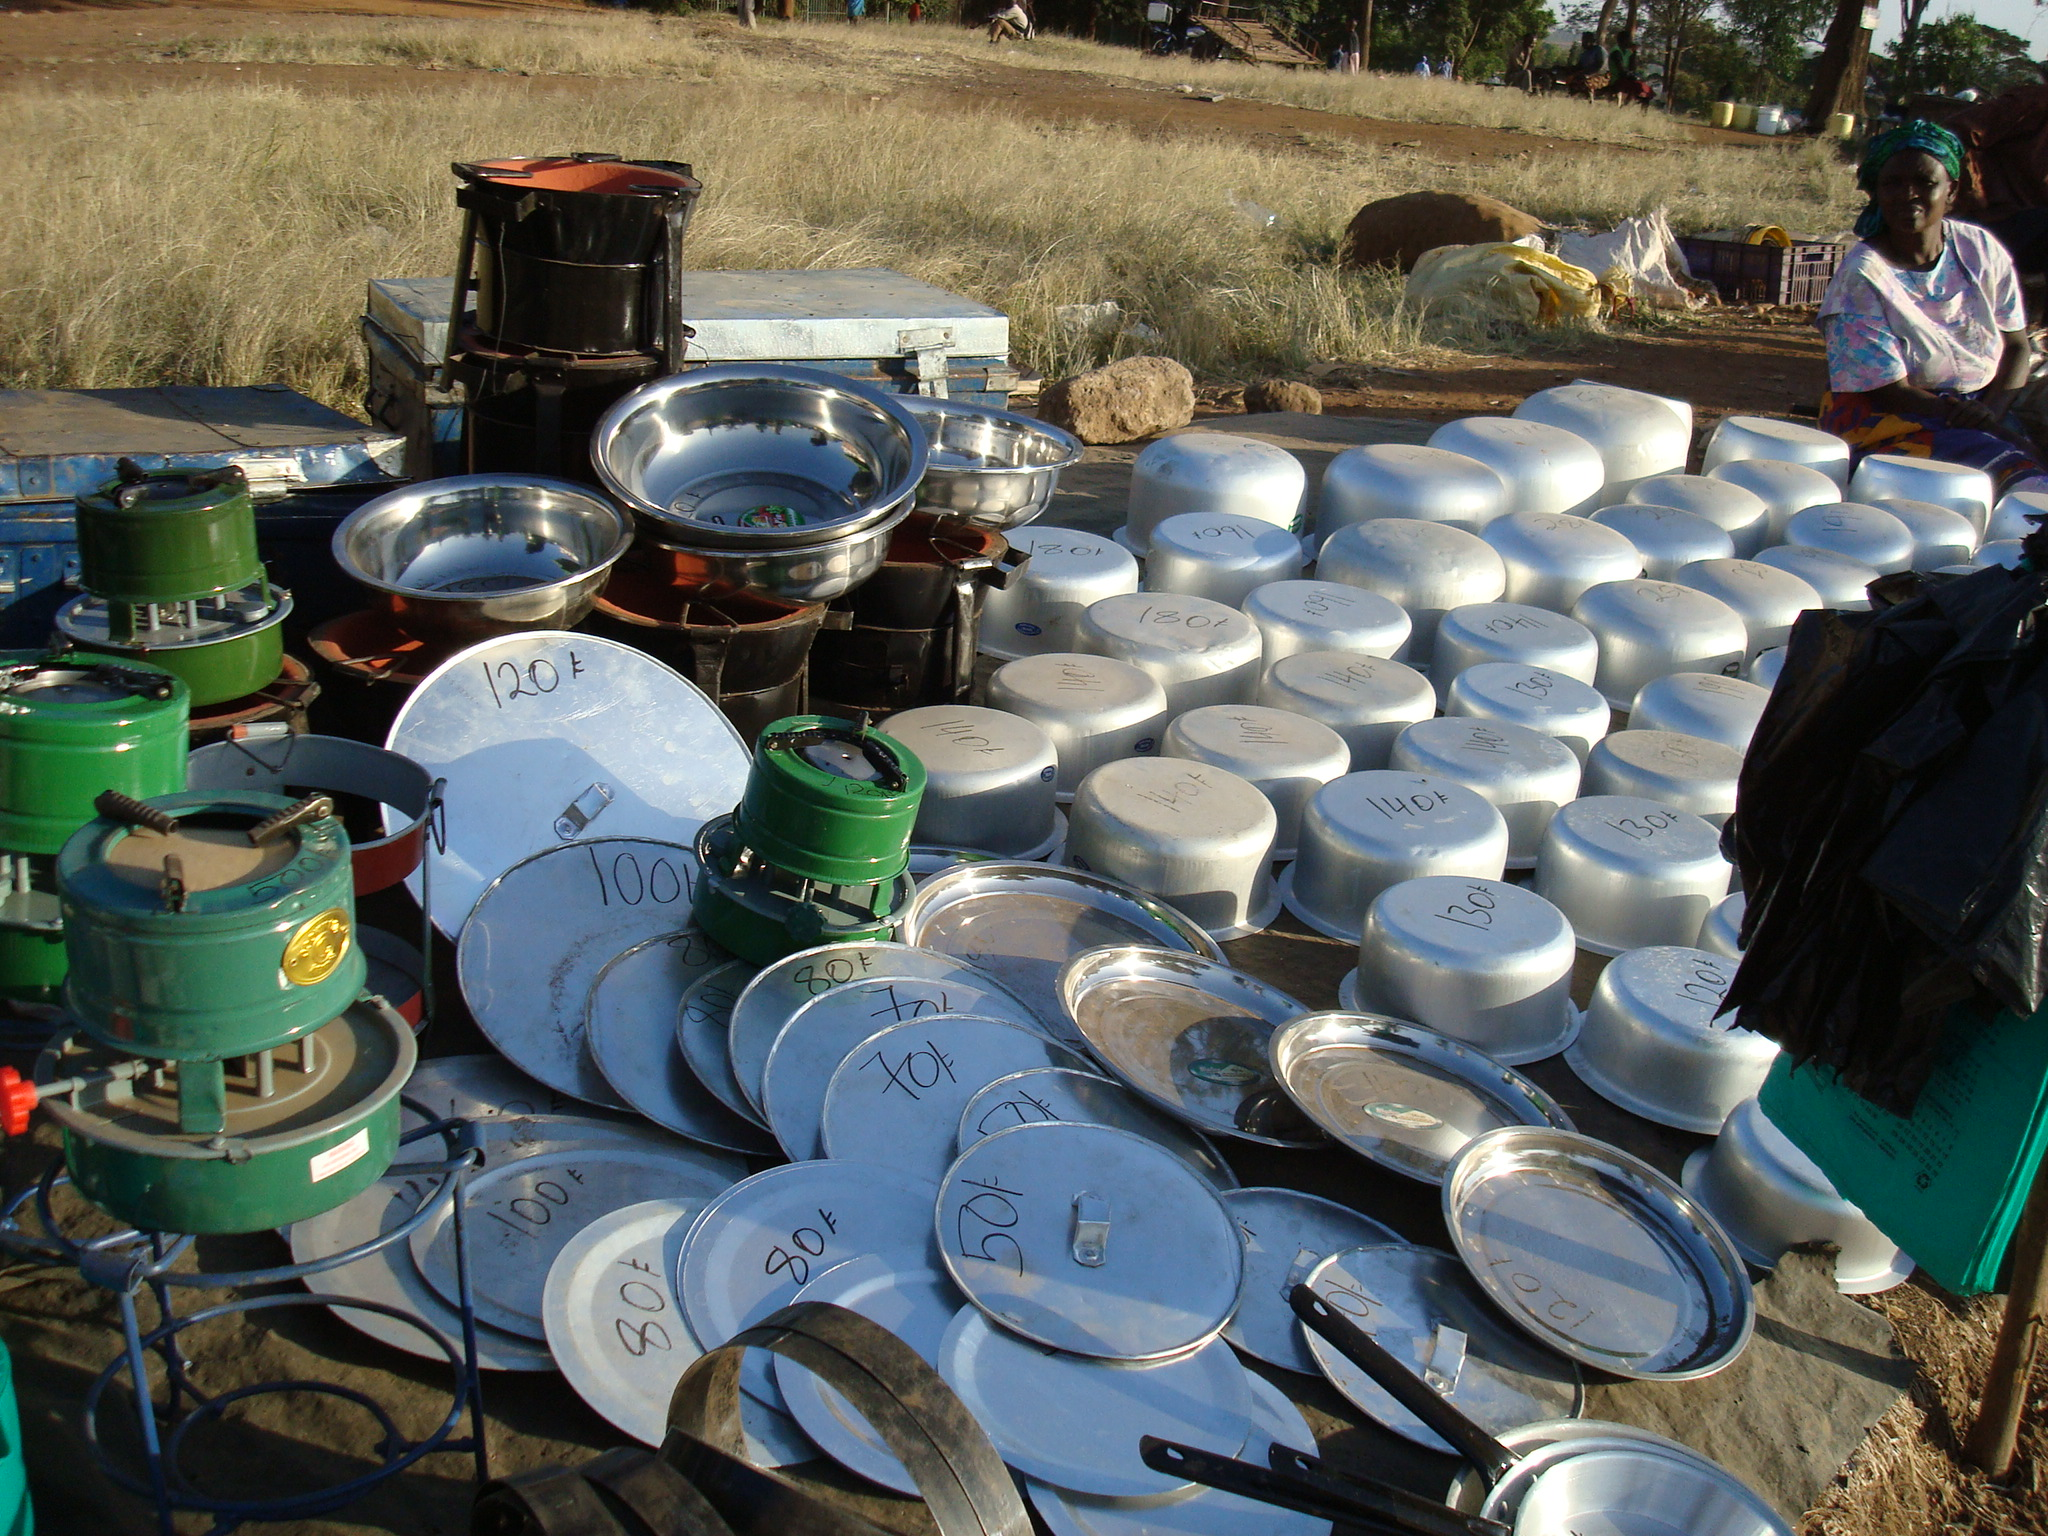 Kitchenware stall at open air market outside Kibera, Nairobi Kenya 23 Jan 2012